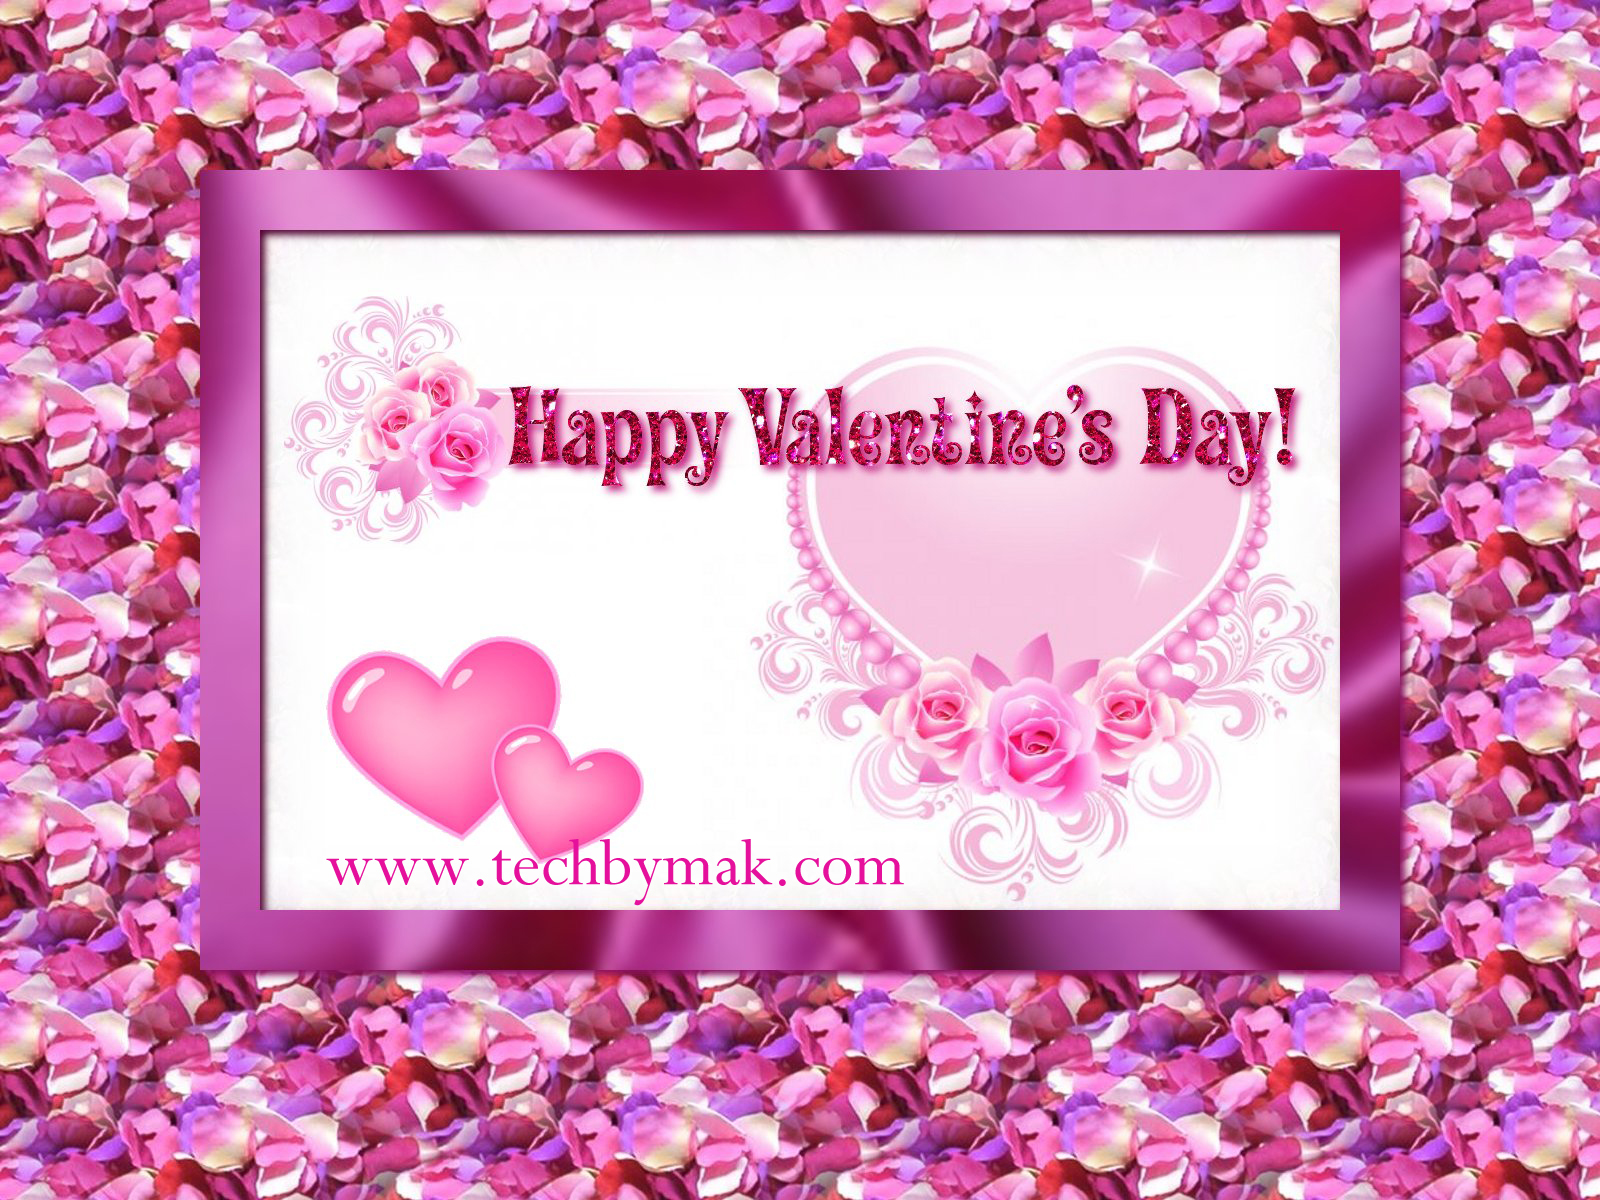 Happy Valentines Day Picturesphotos And Wallpapers 2013. 1600 x 1200.Best Valentine's Day Quotes For Him